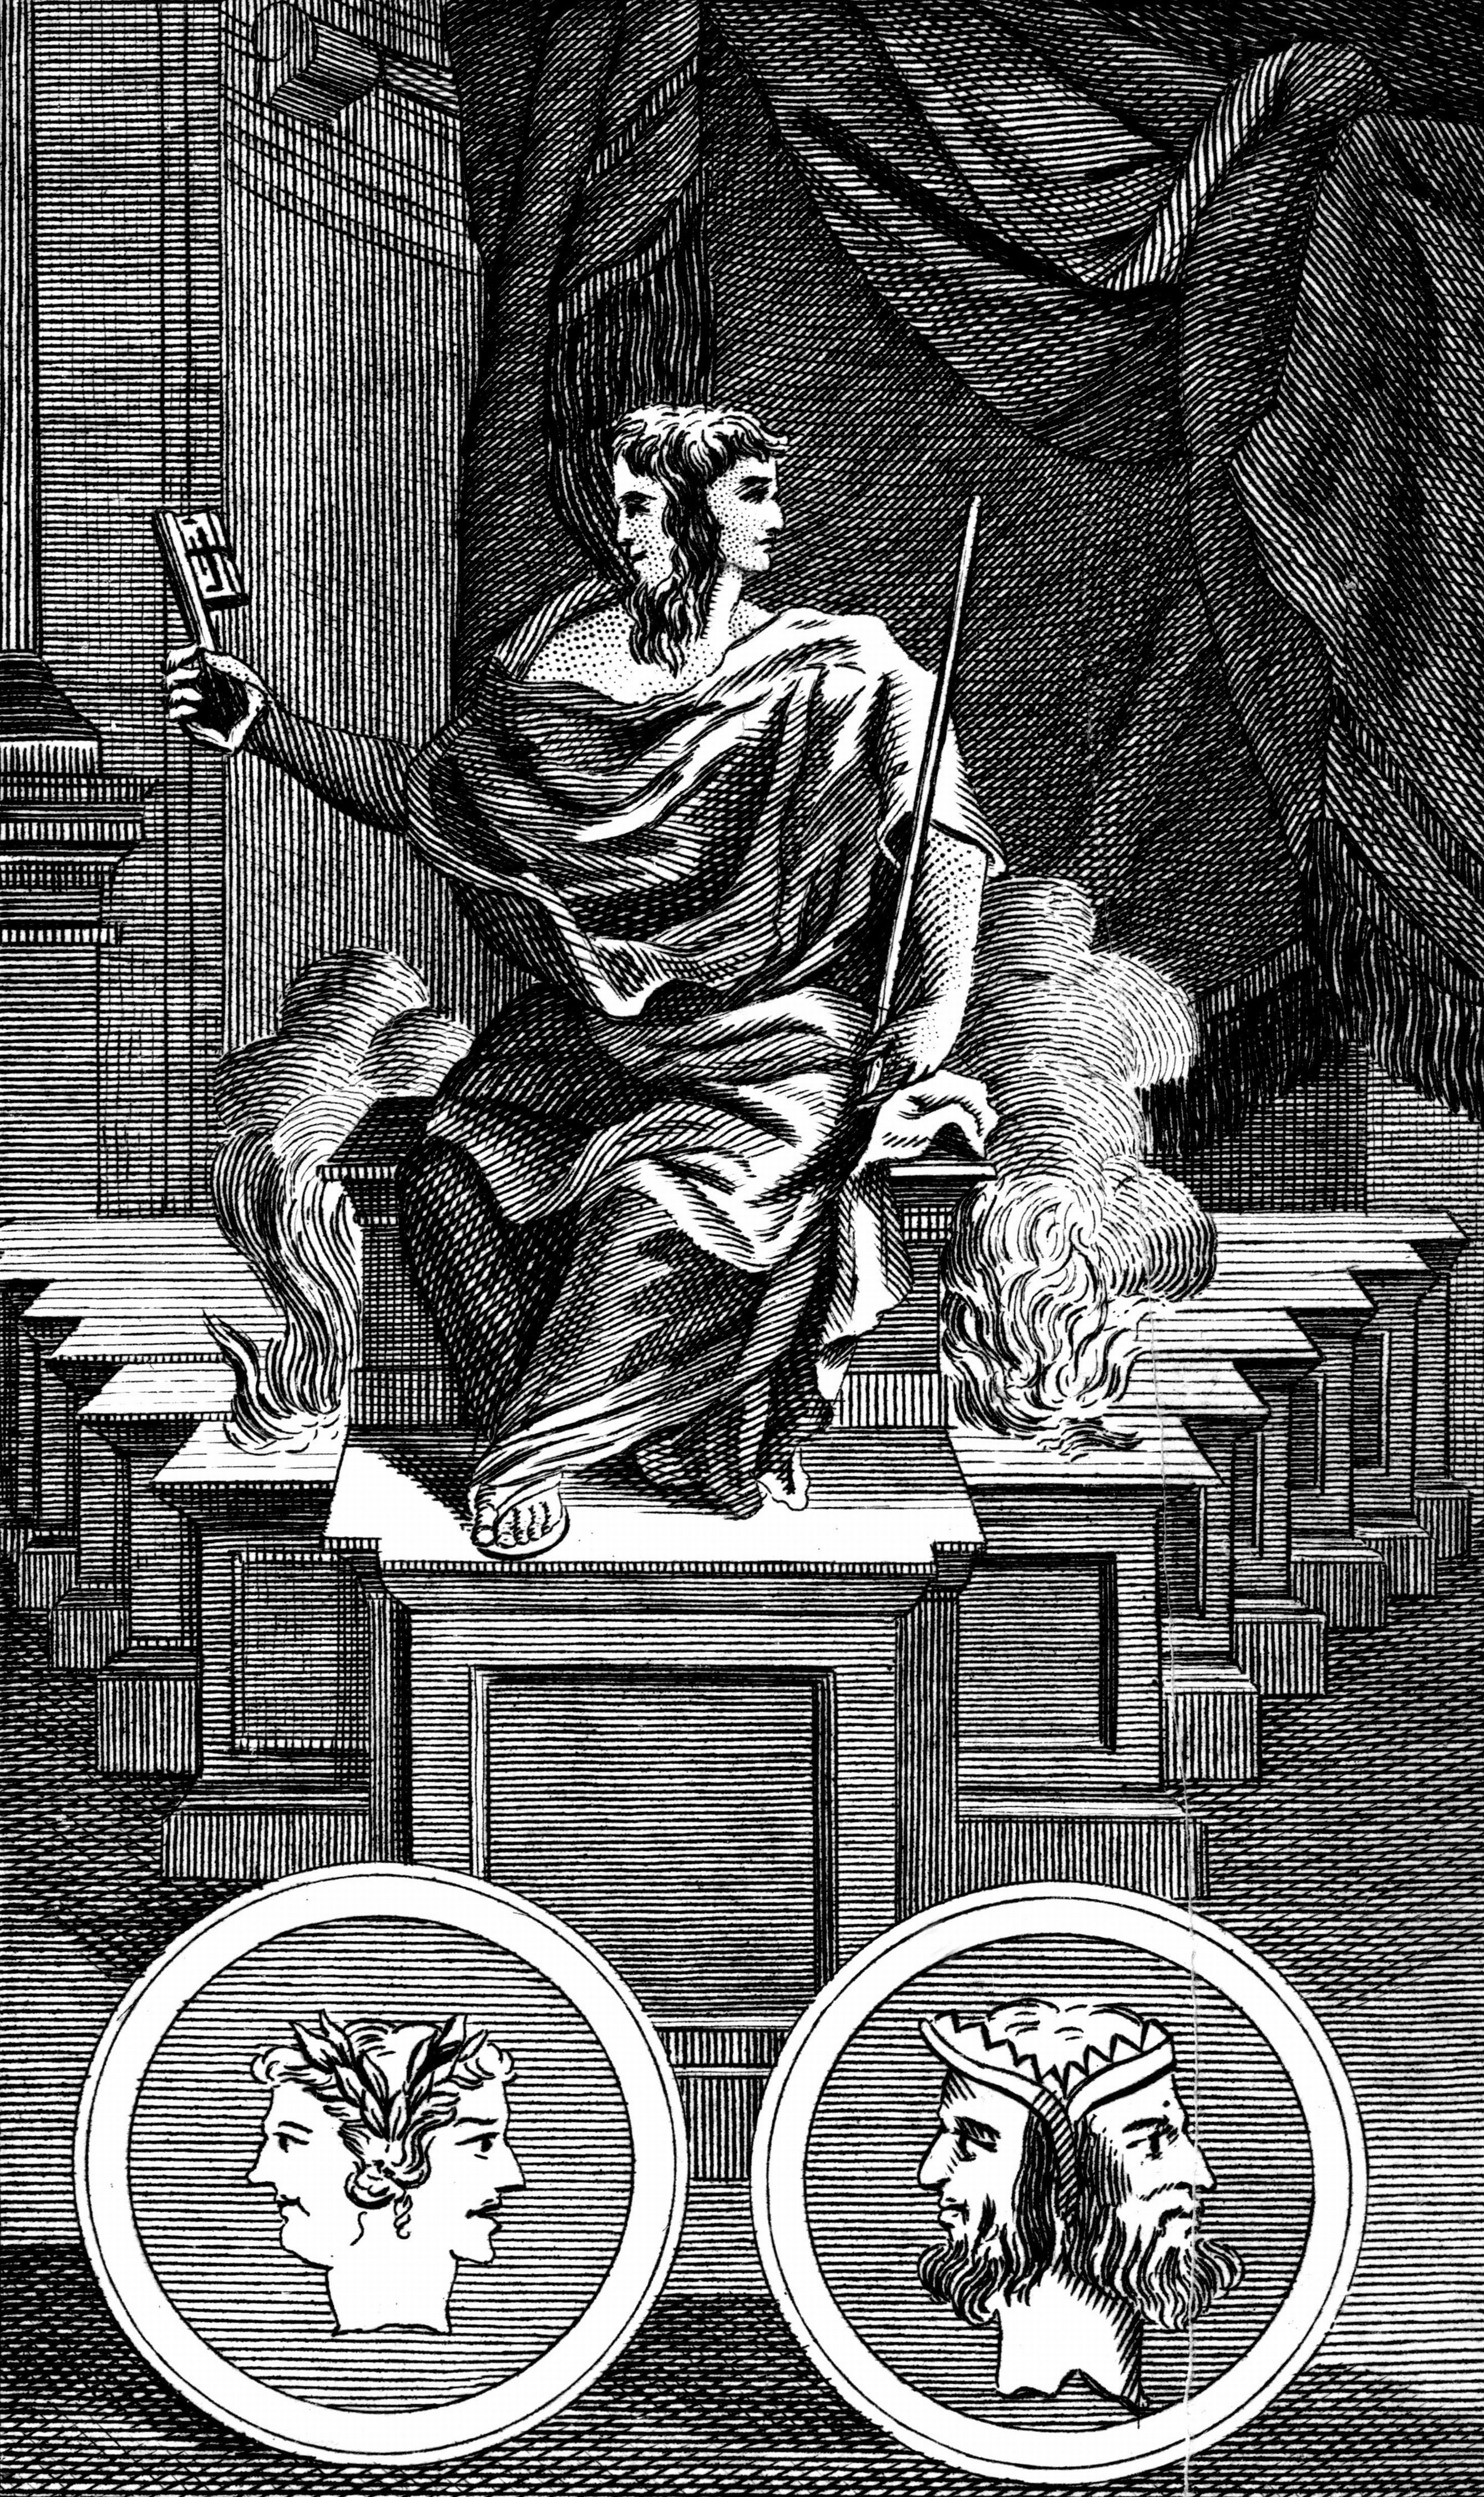 Janus - Two-faced Roman god for whom the month January is named